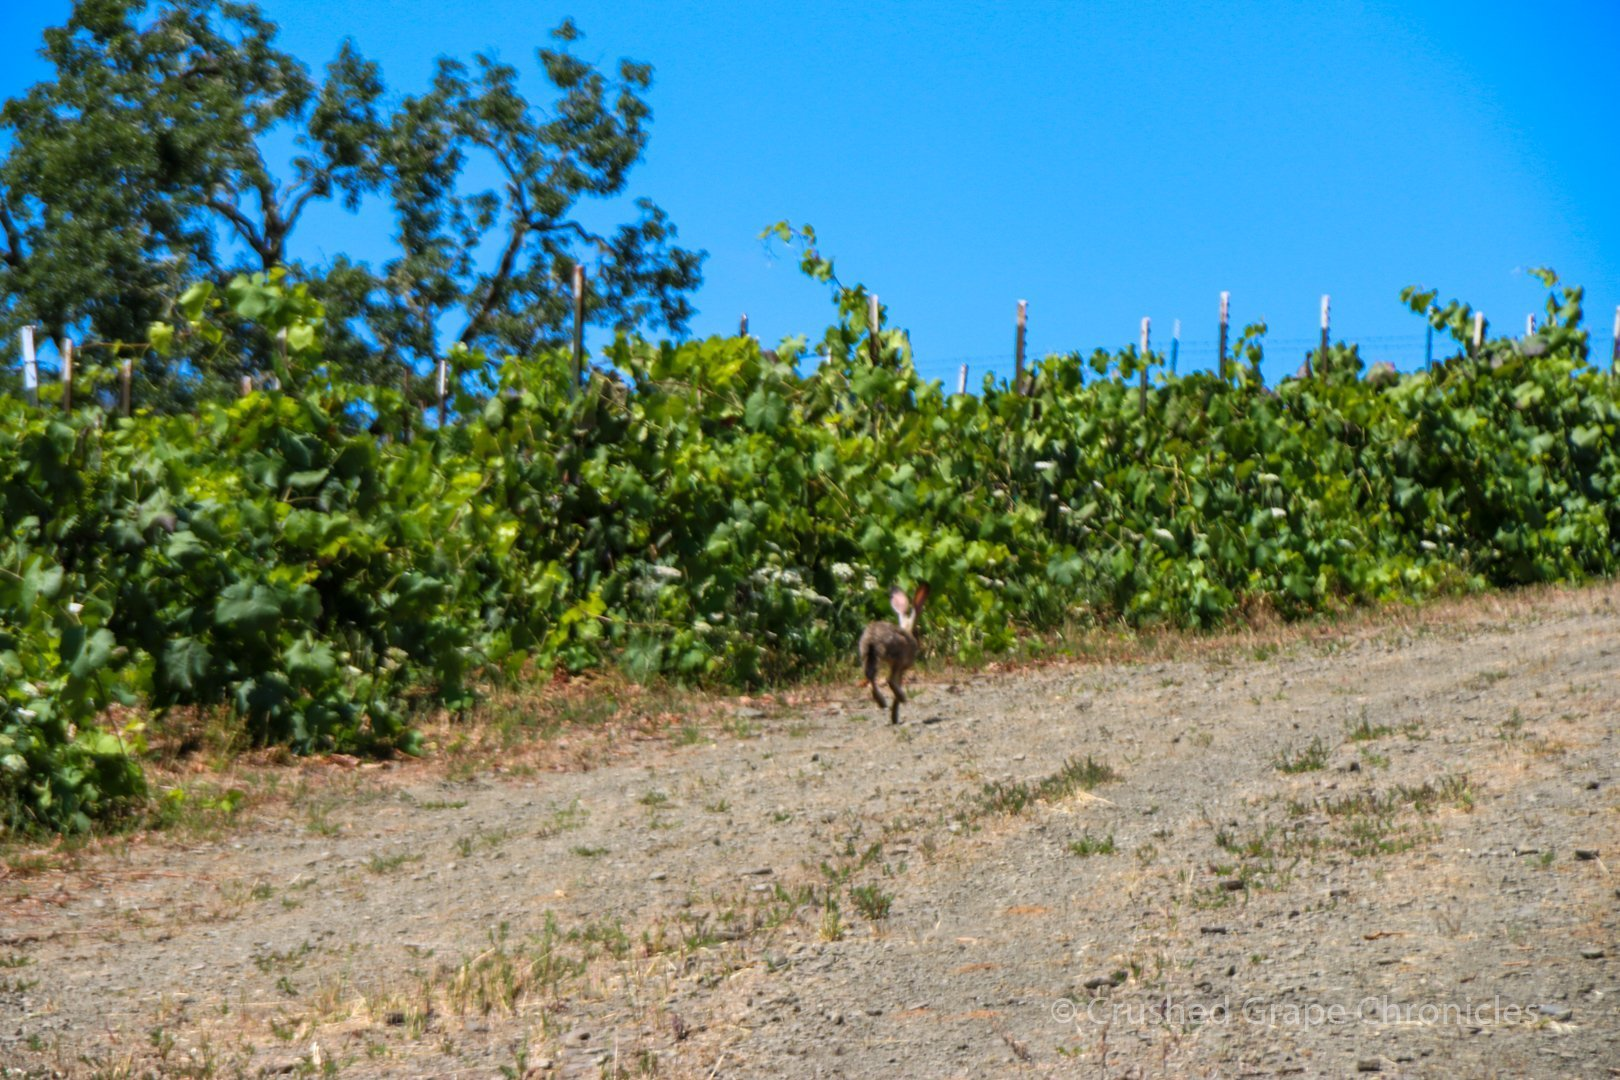 Jack rabbits at the Girardet Vineyard